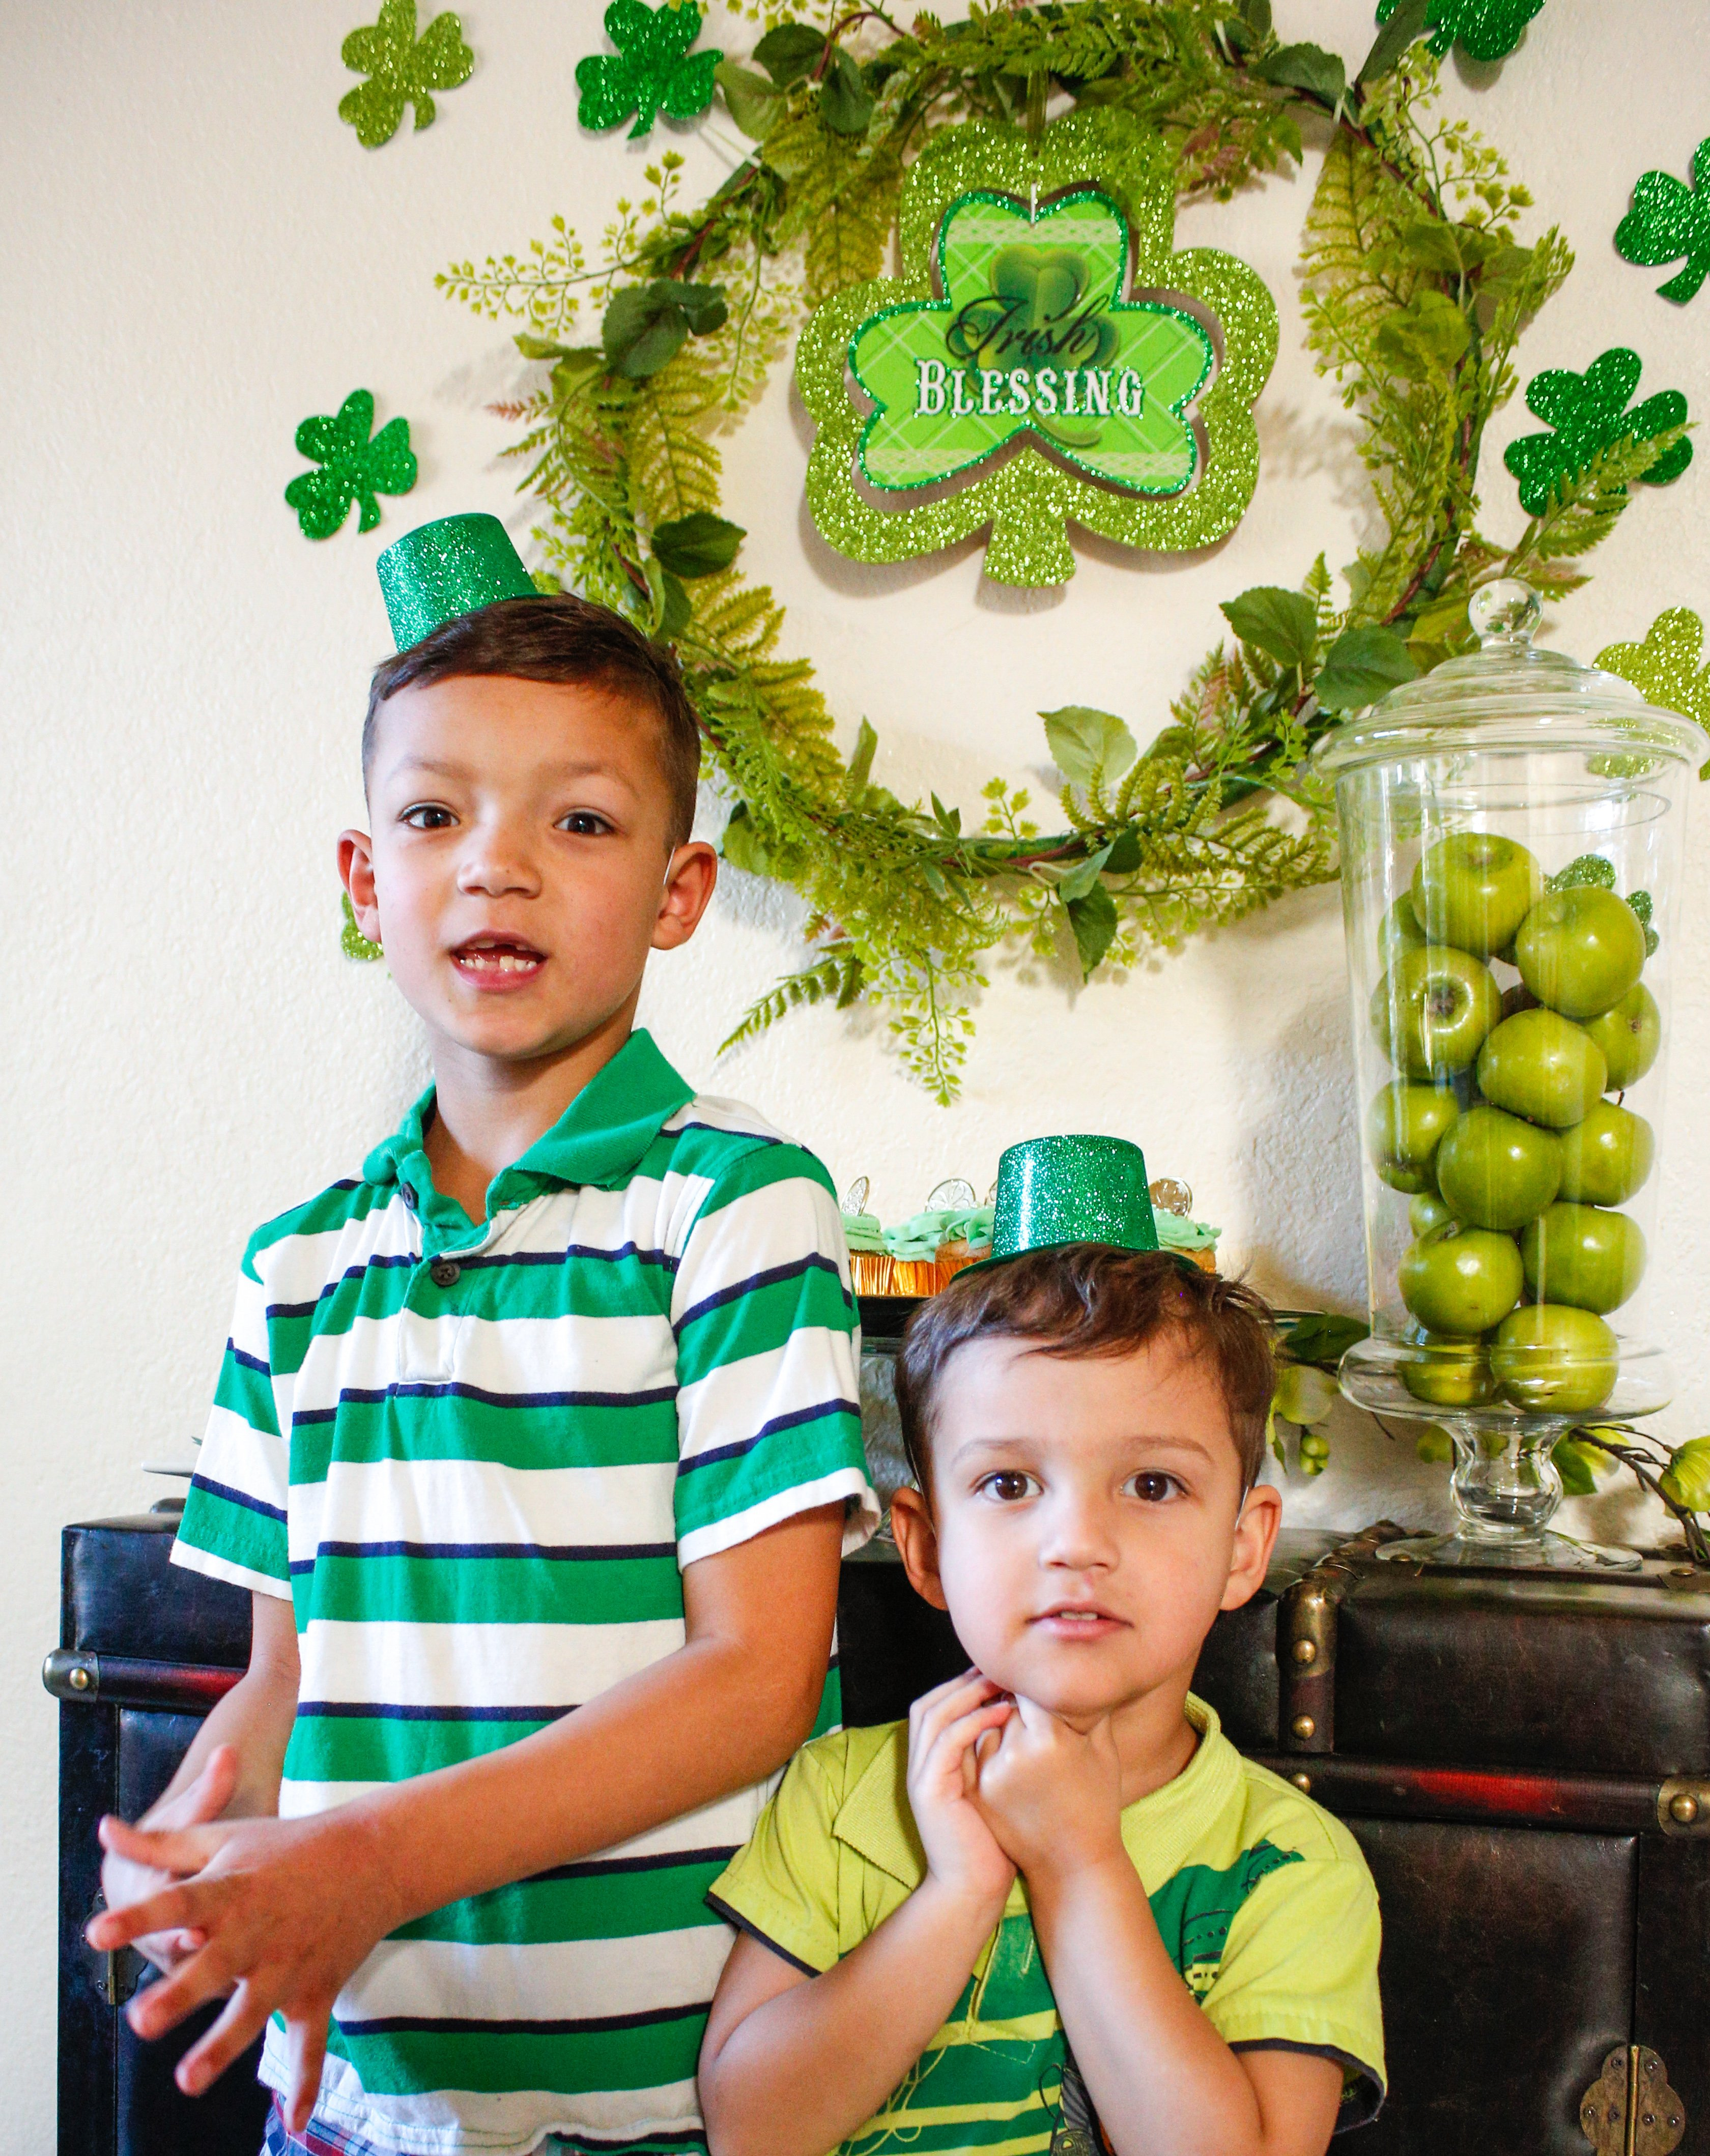 Dress up the kids in fun green hats for a family style St. Patrick's day dinner party